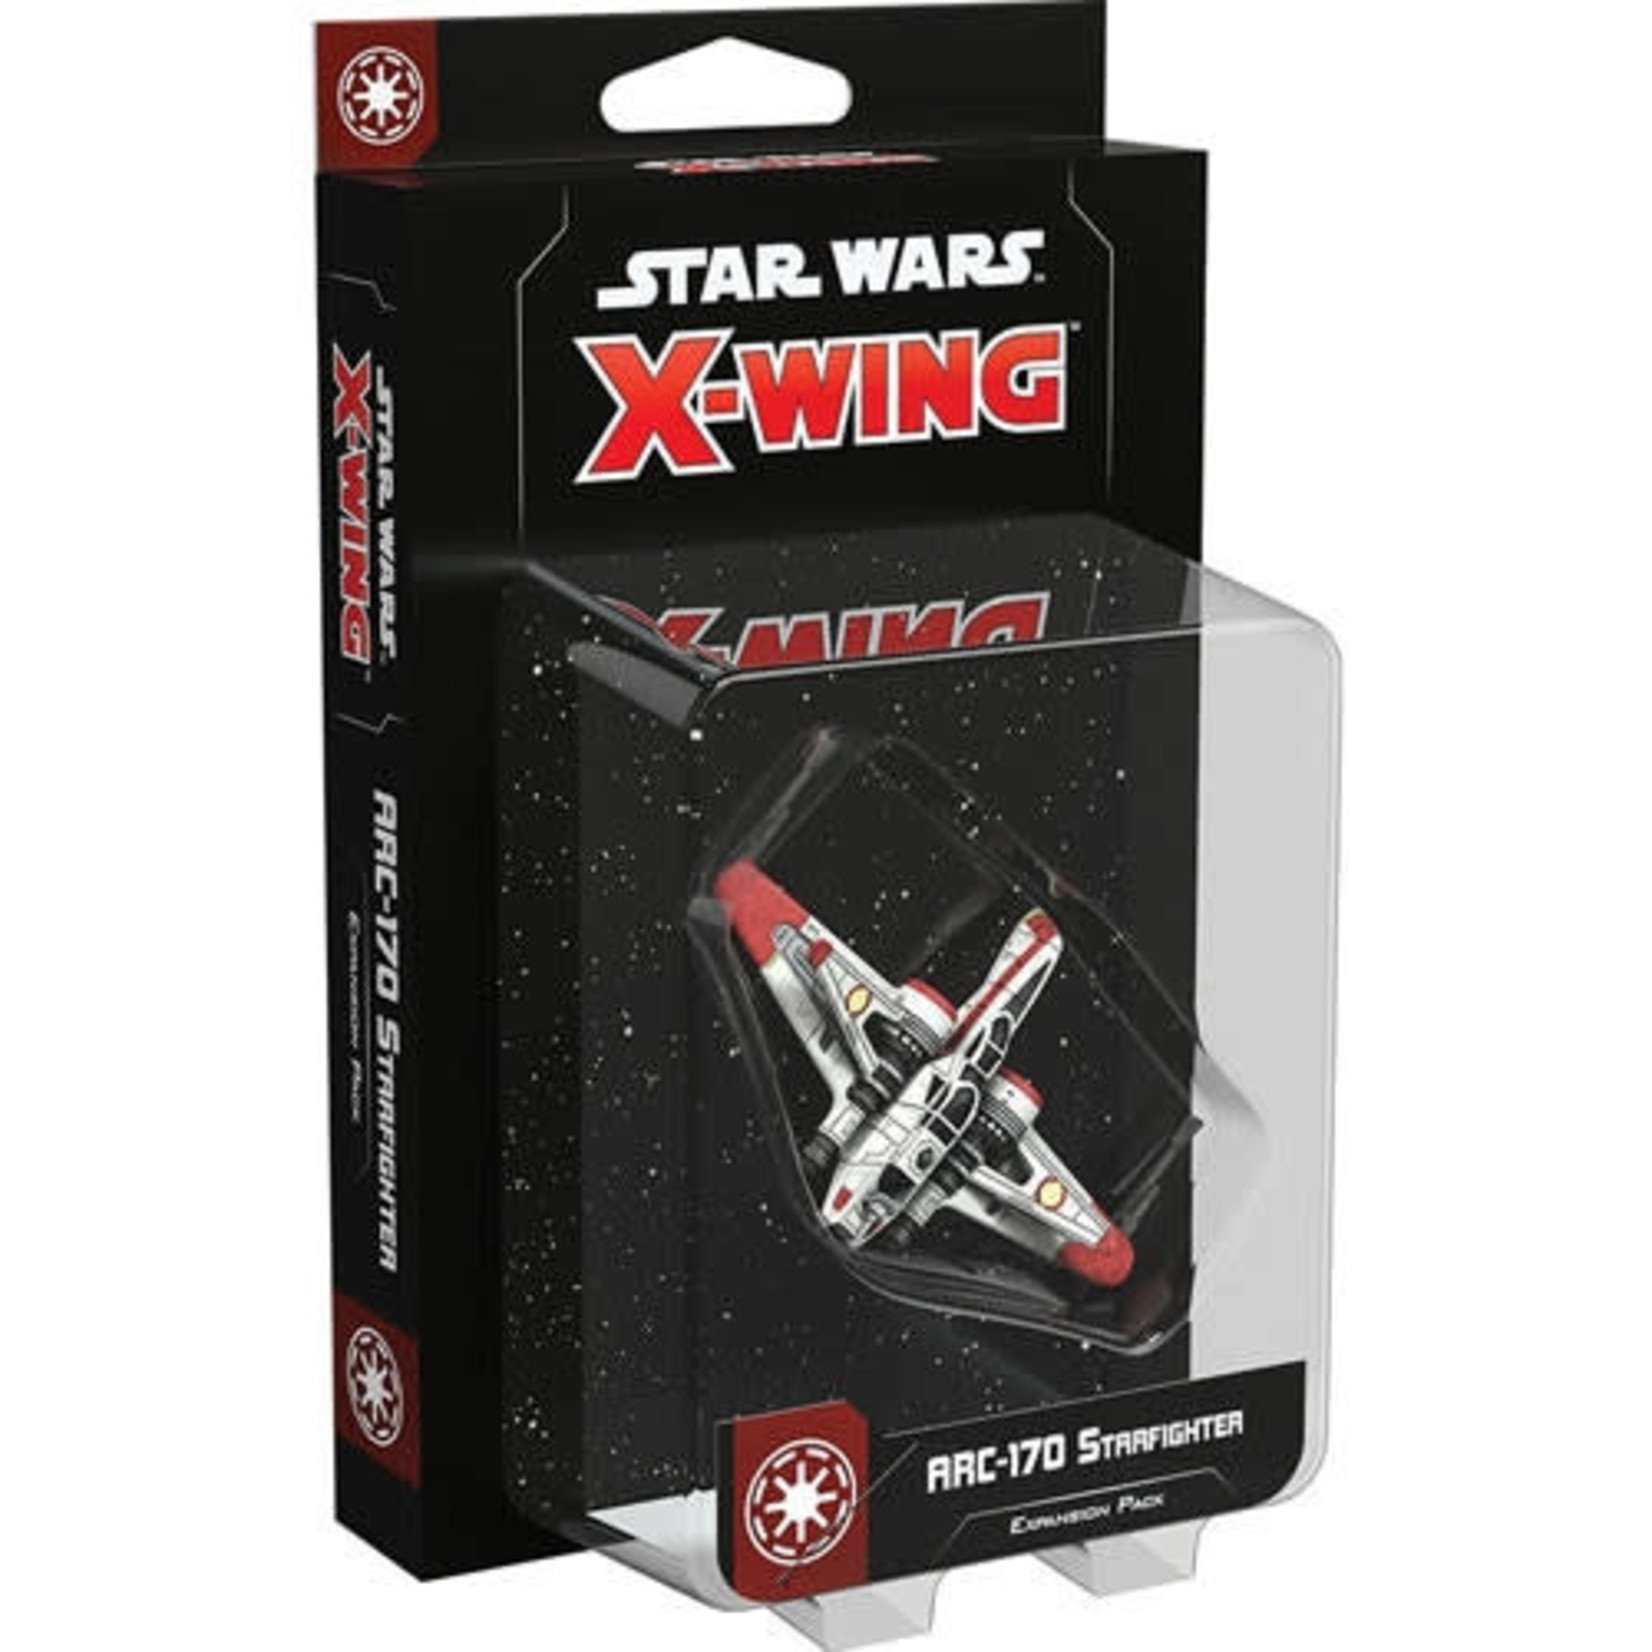 Star Wars X-Wing 2e: ARC-170 Starfighter Expansion Pack